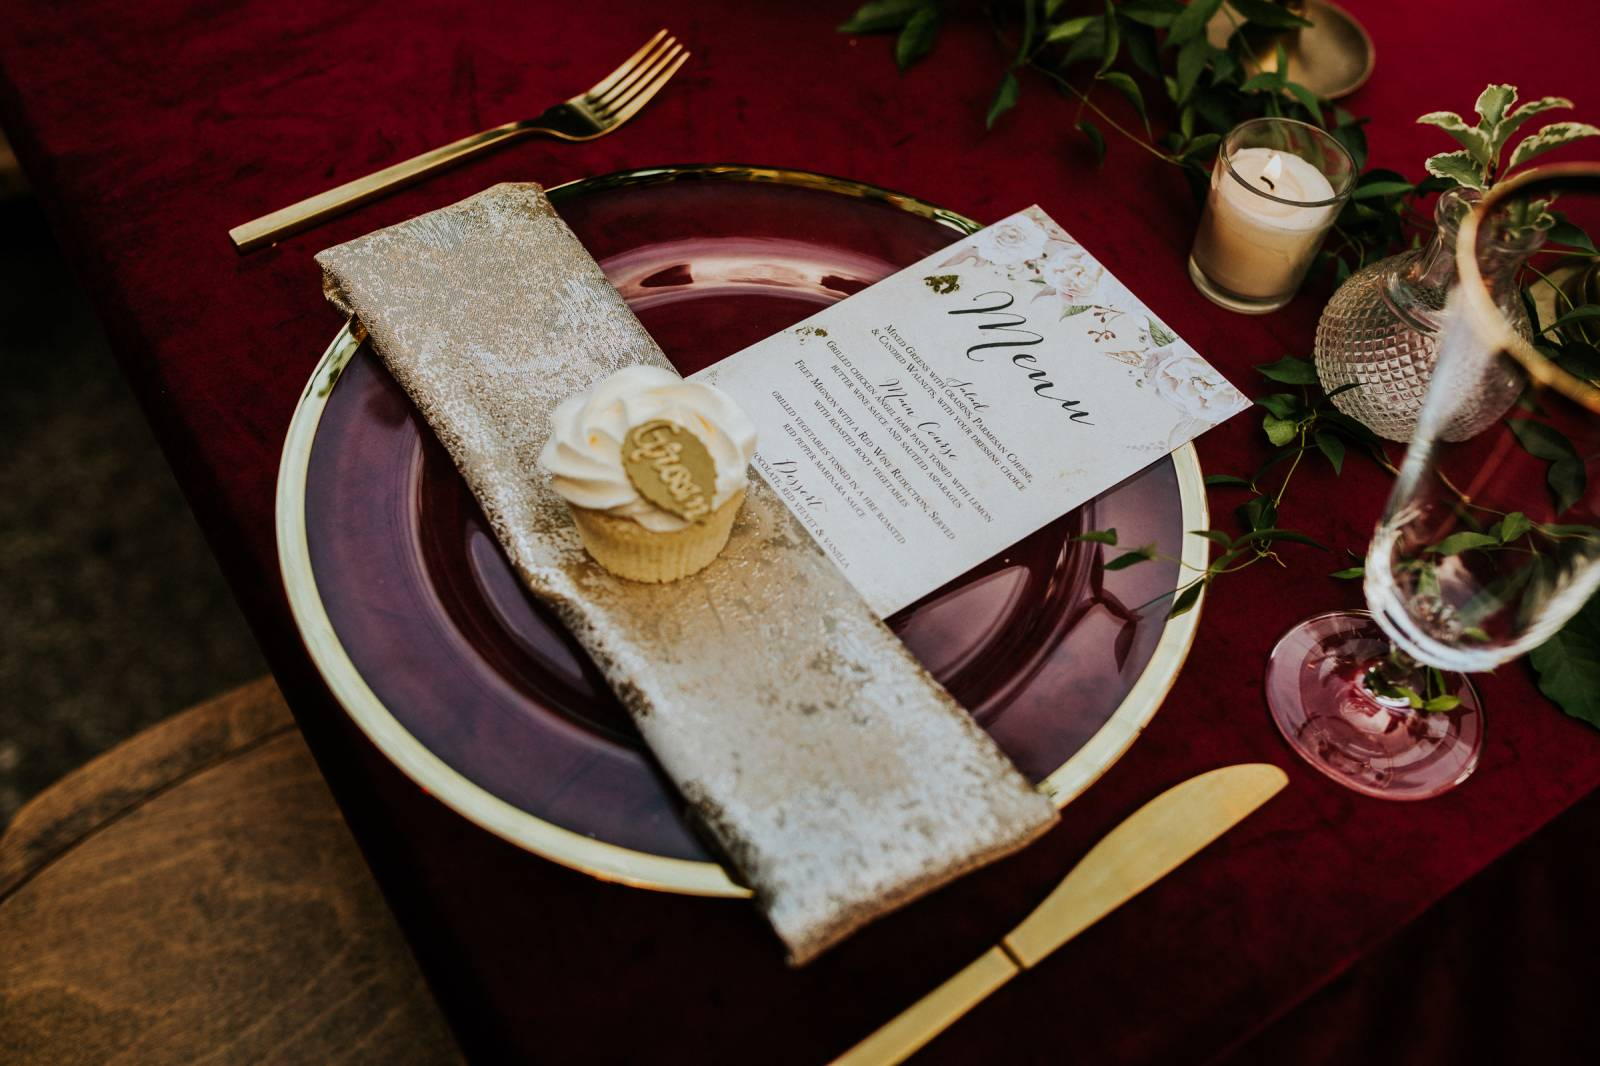 Gold and burgundy place setting